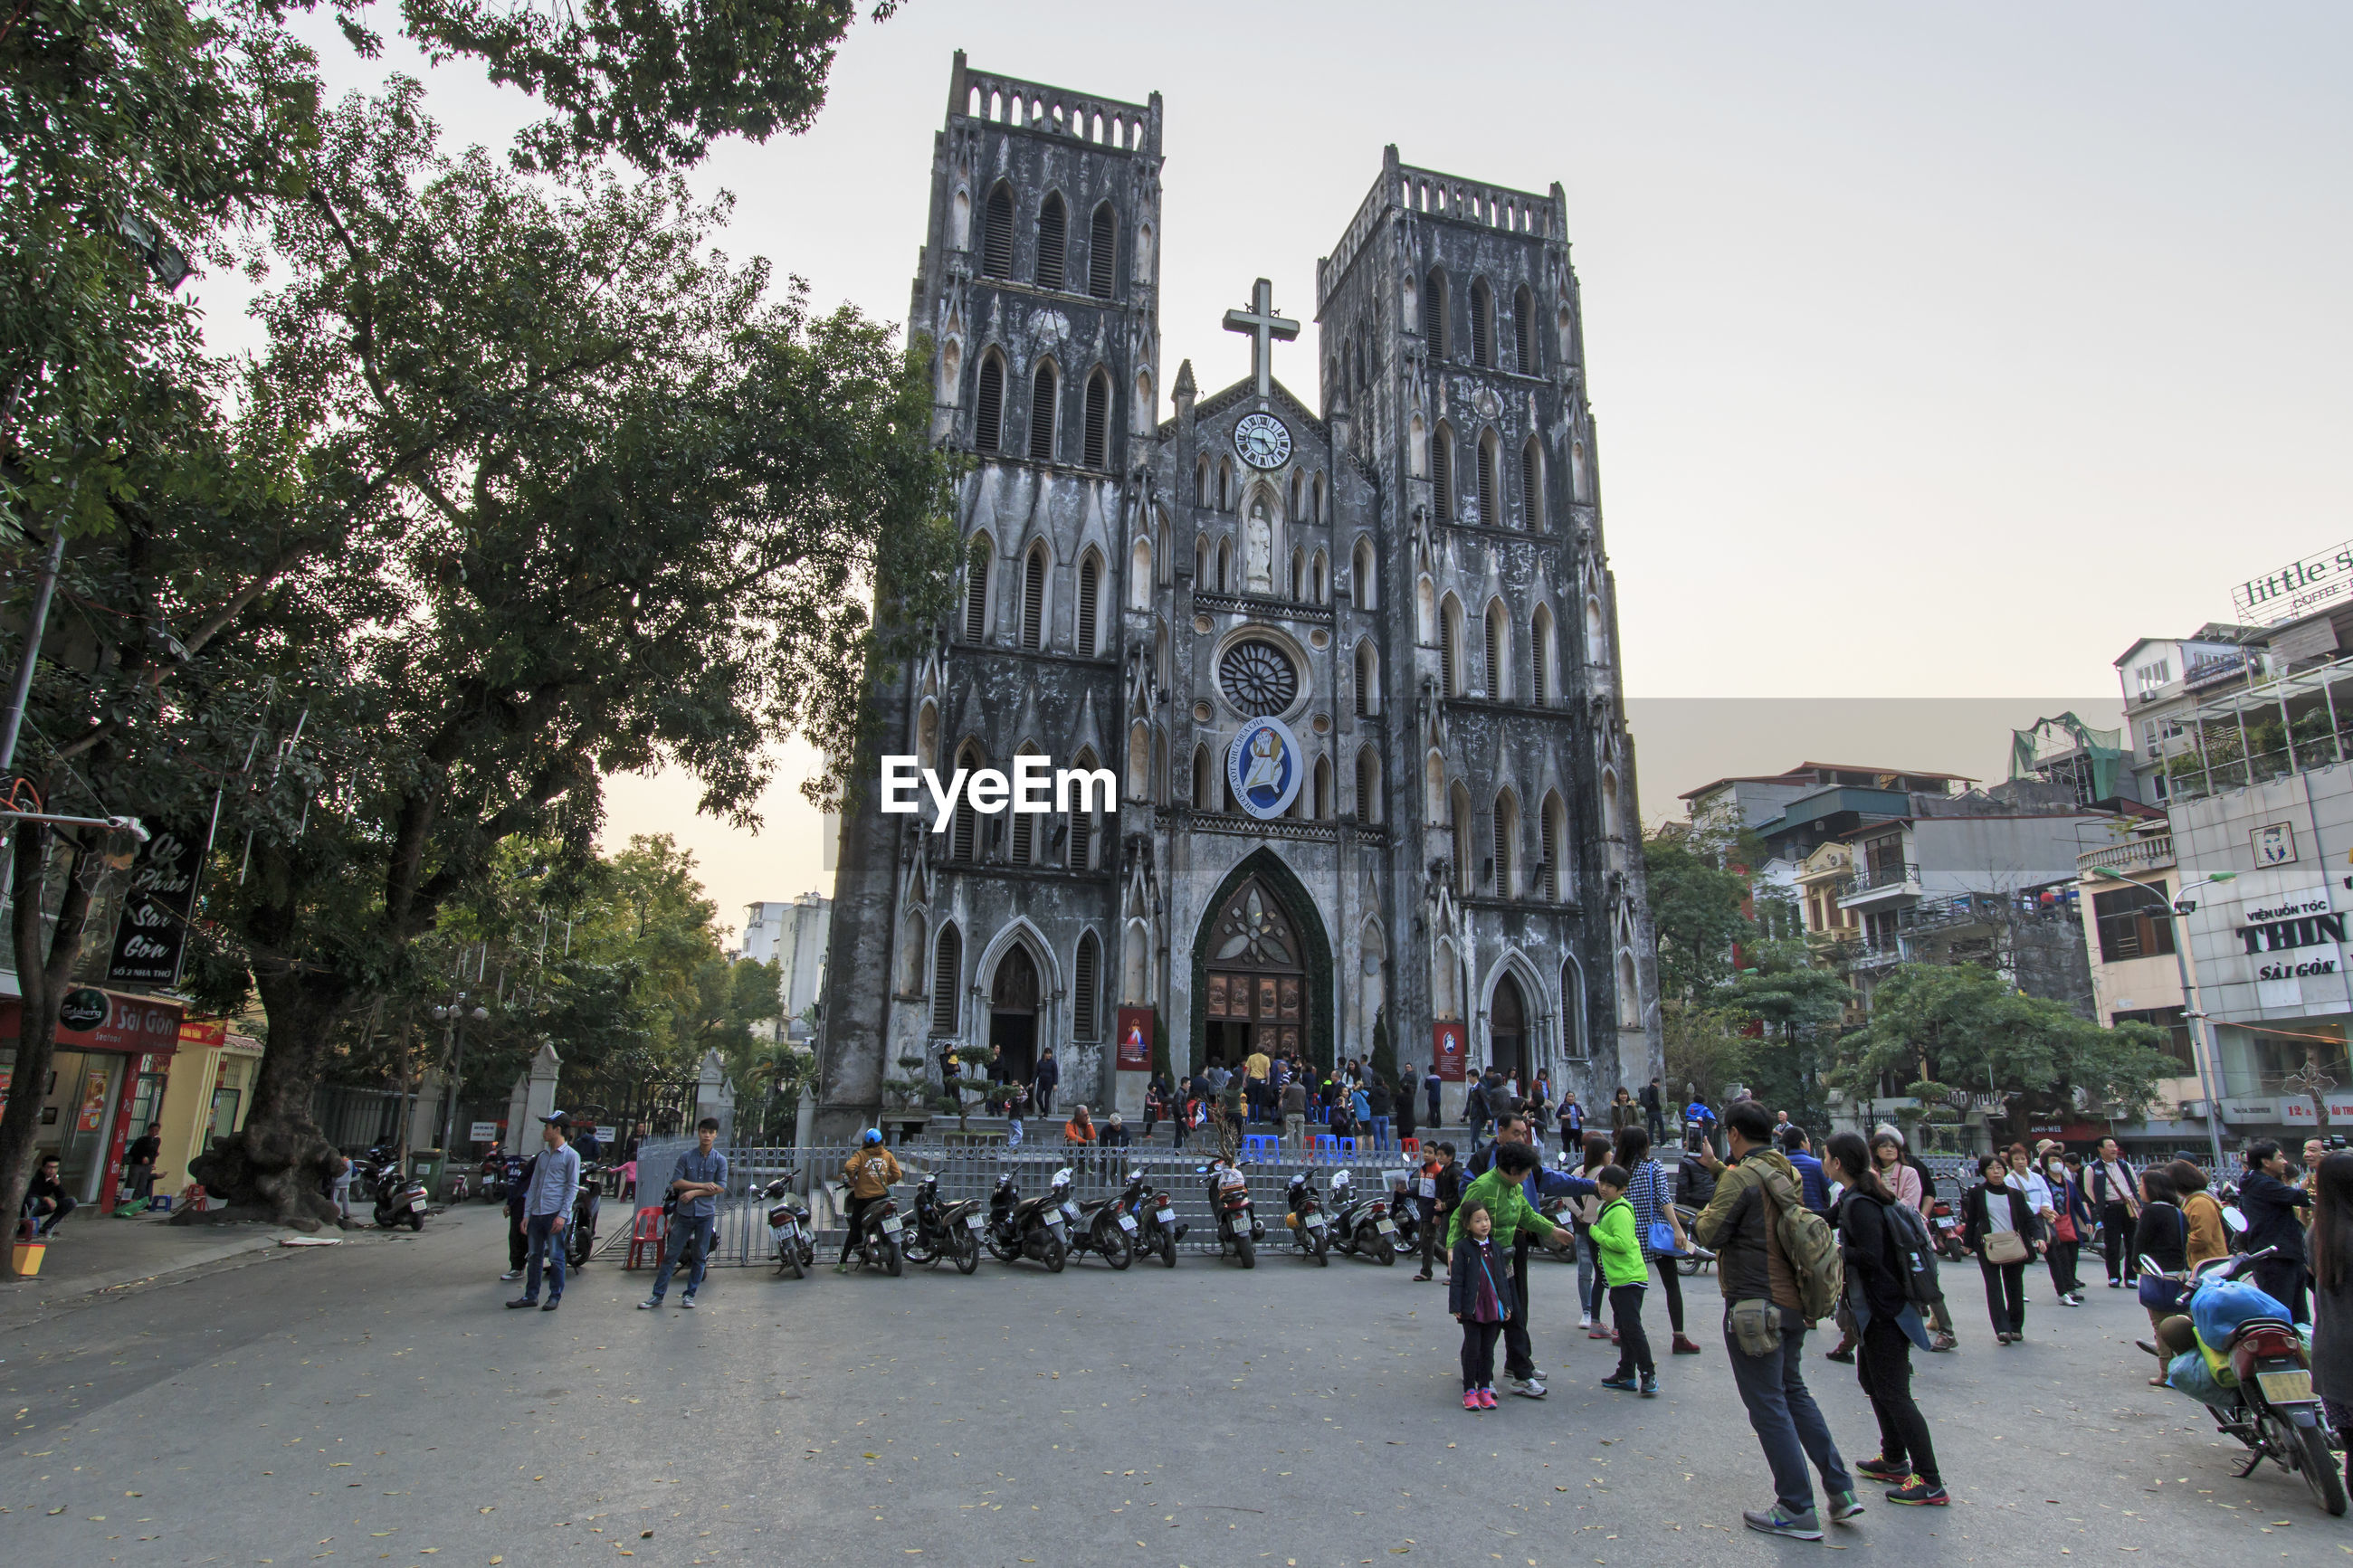 People on street in front of st joseph cathedral